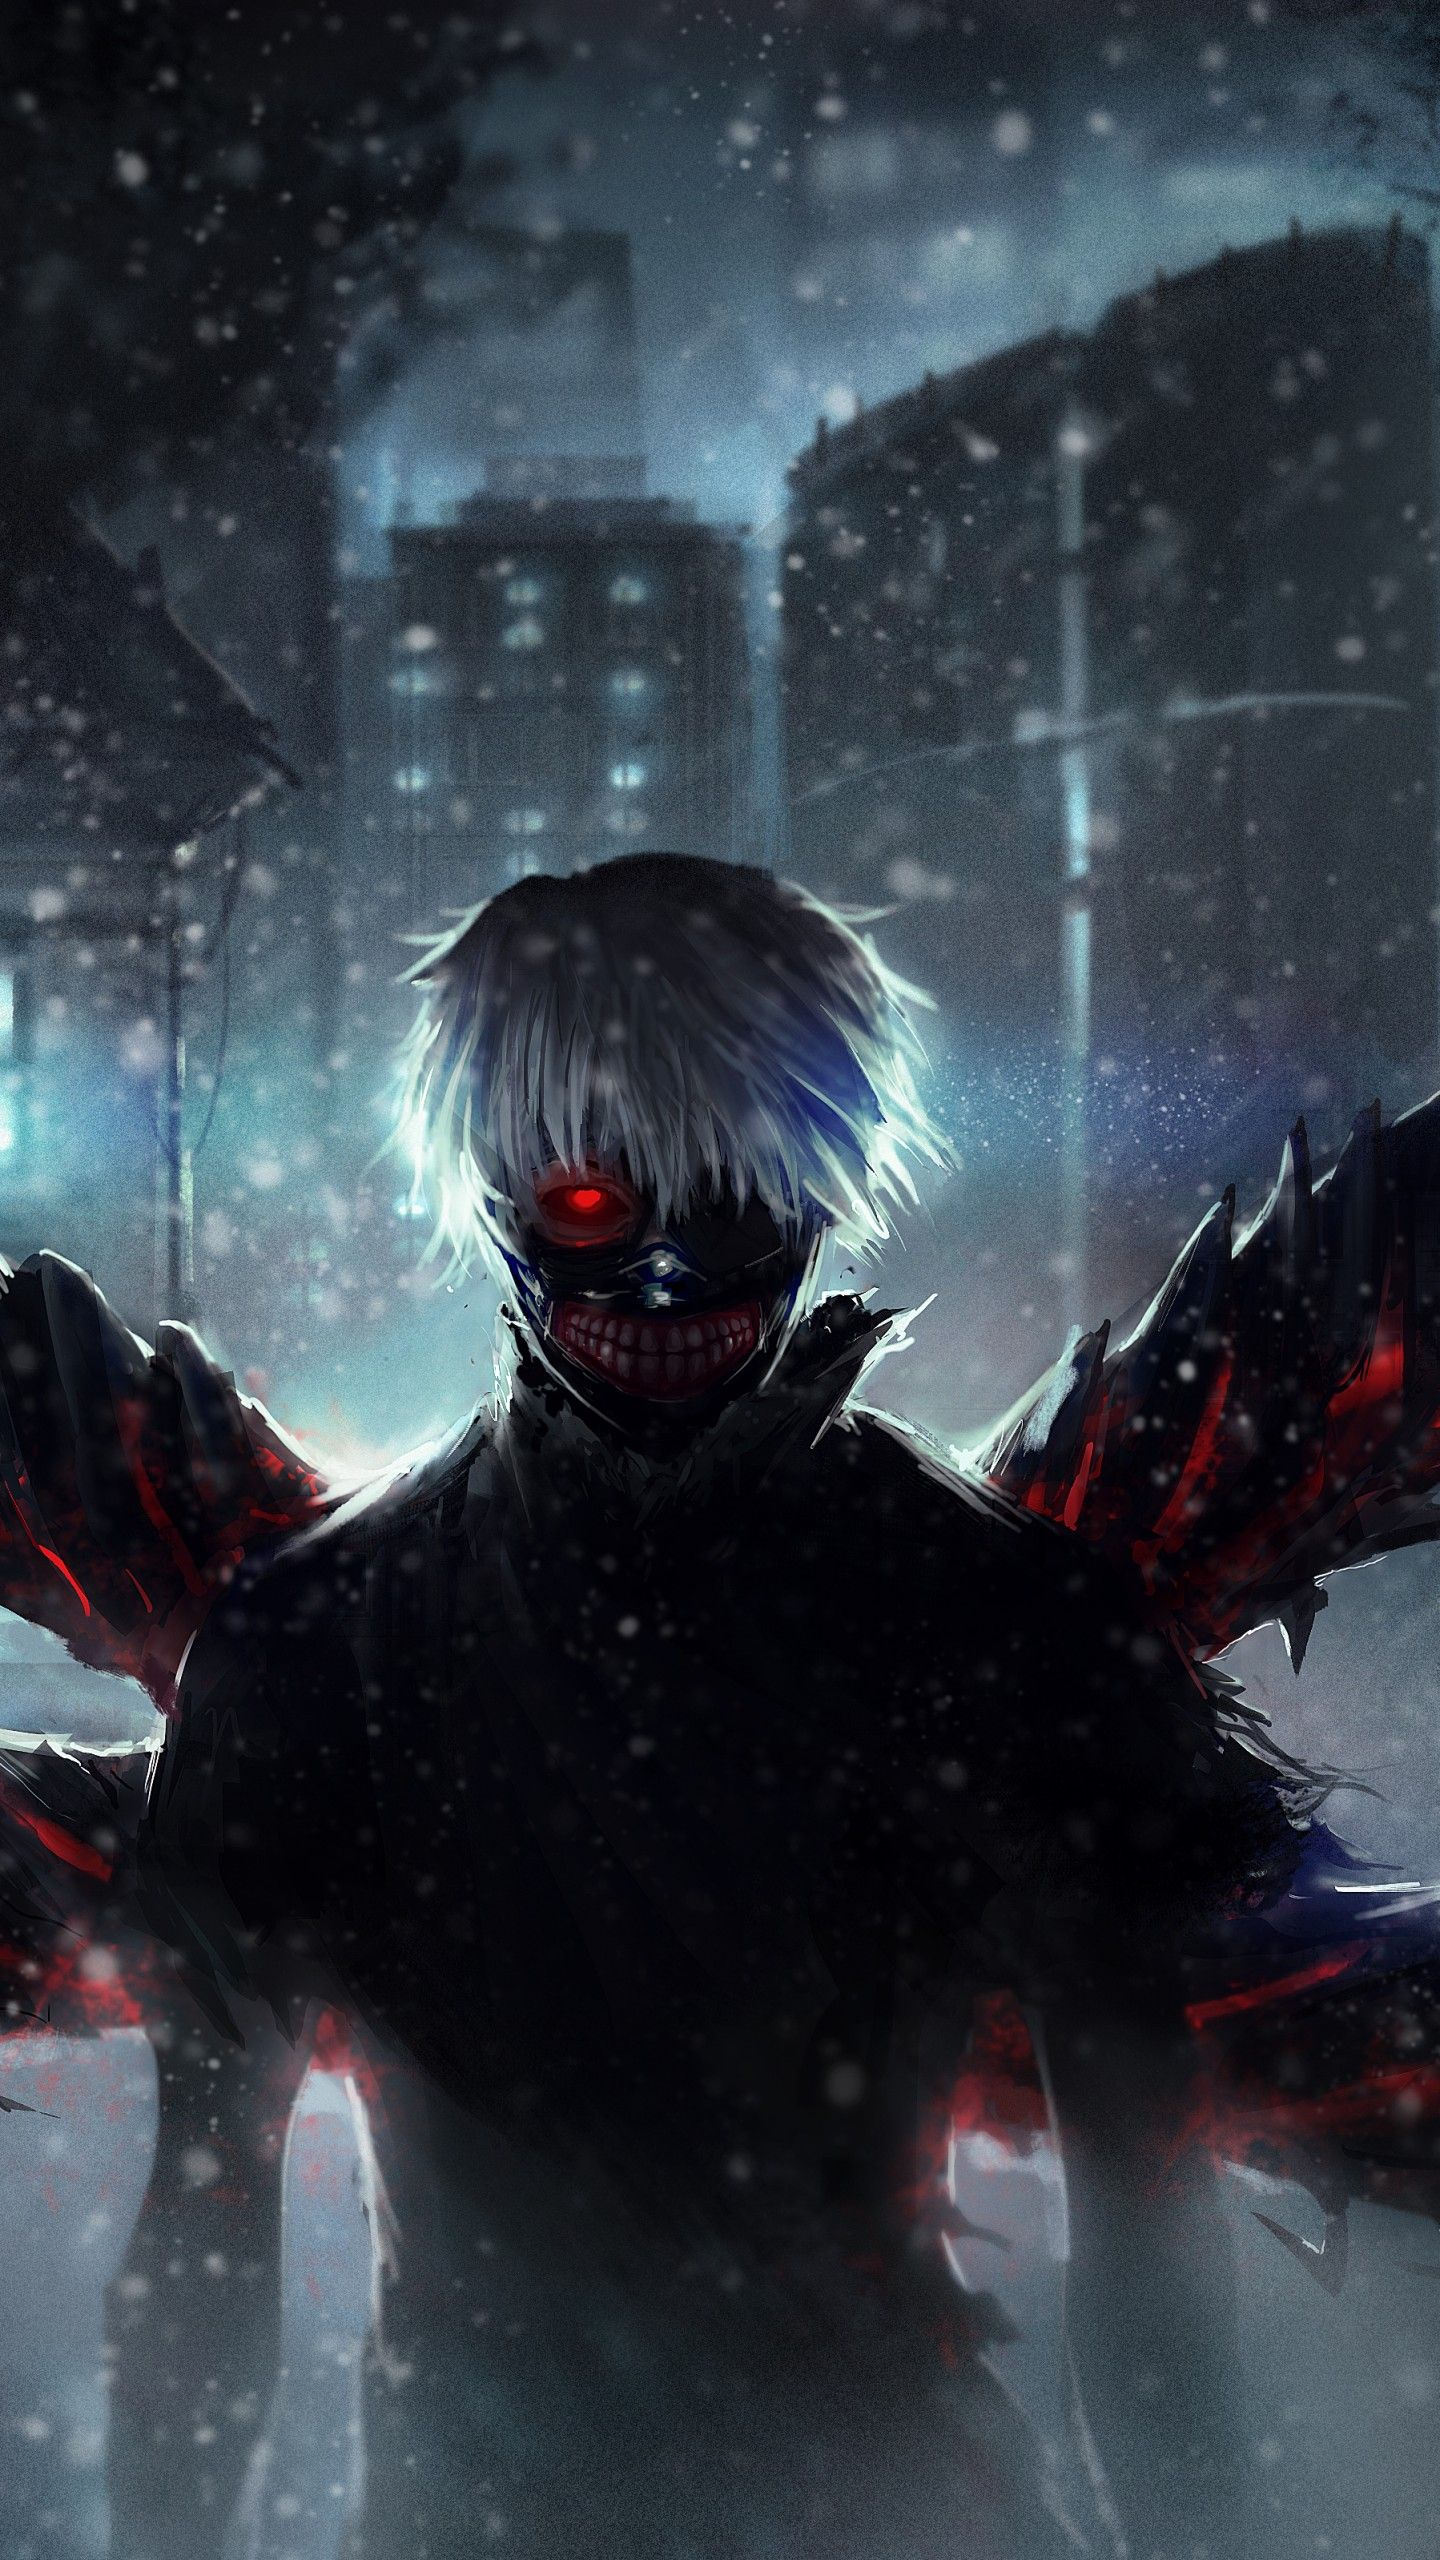 Get galaxy s21 ultra 5g with unlimited plan! HD Tokyo Ghoul Android 4k Wallpapers - Wallpaper Cave